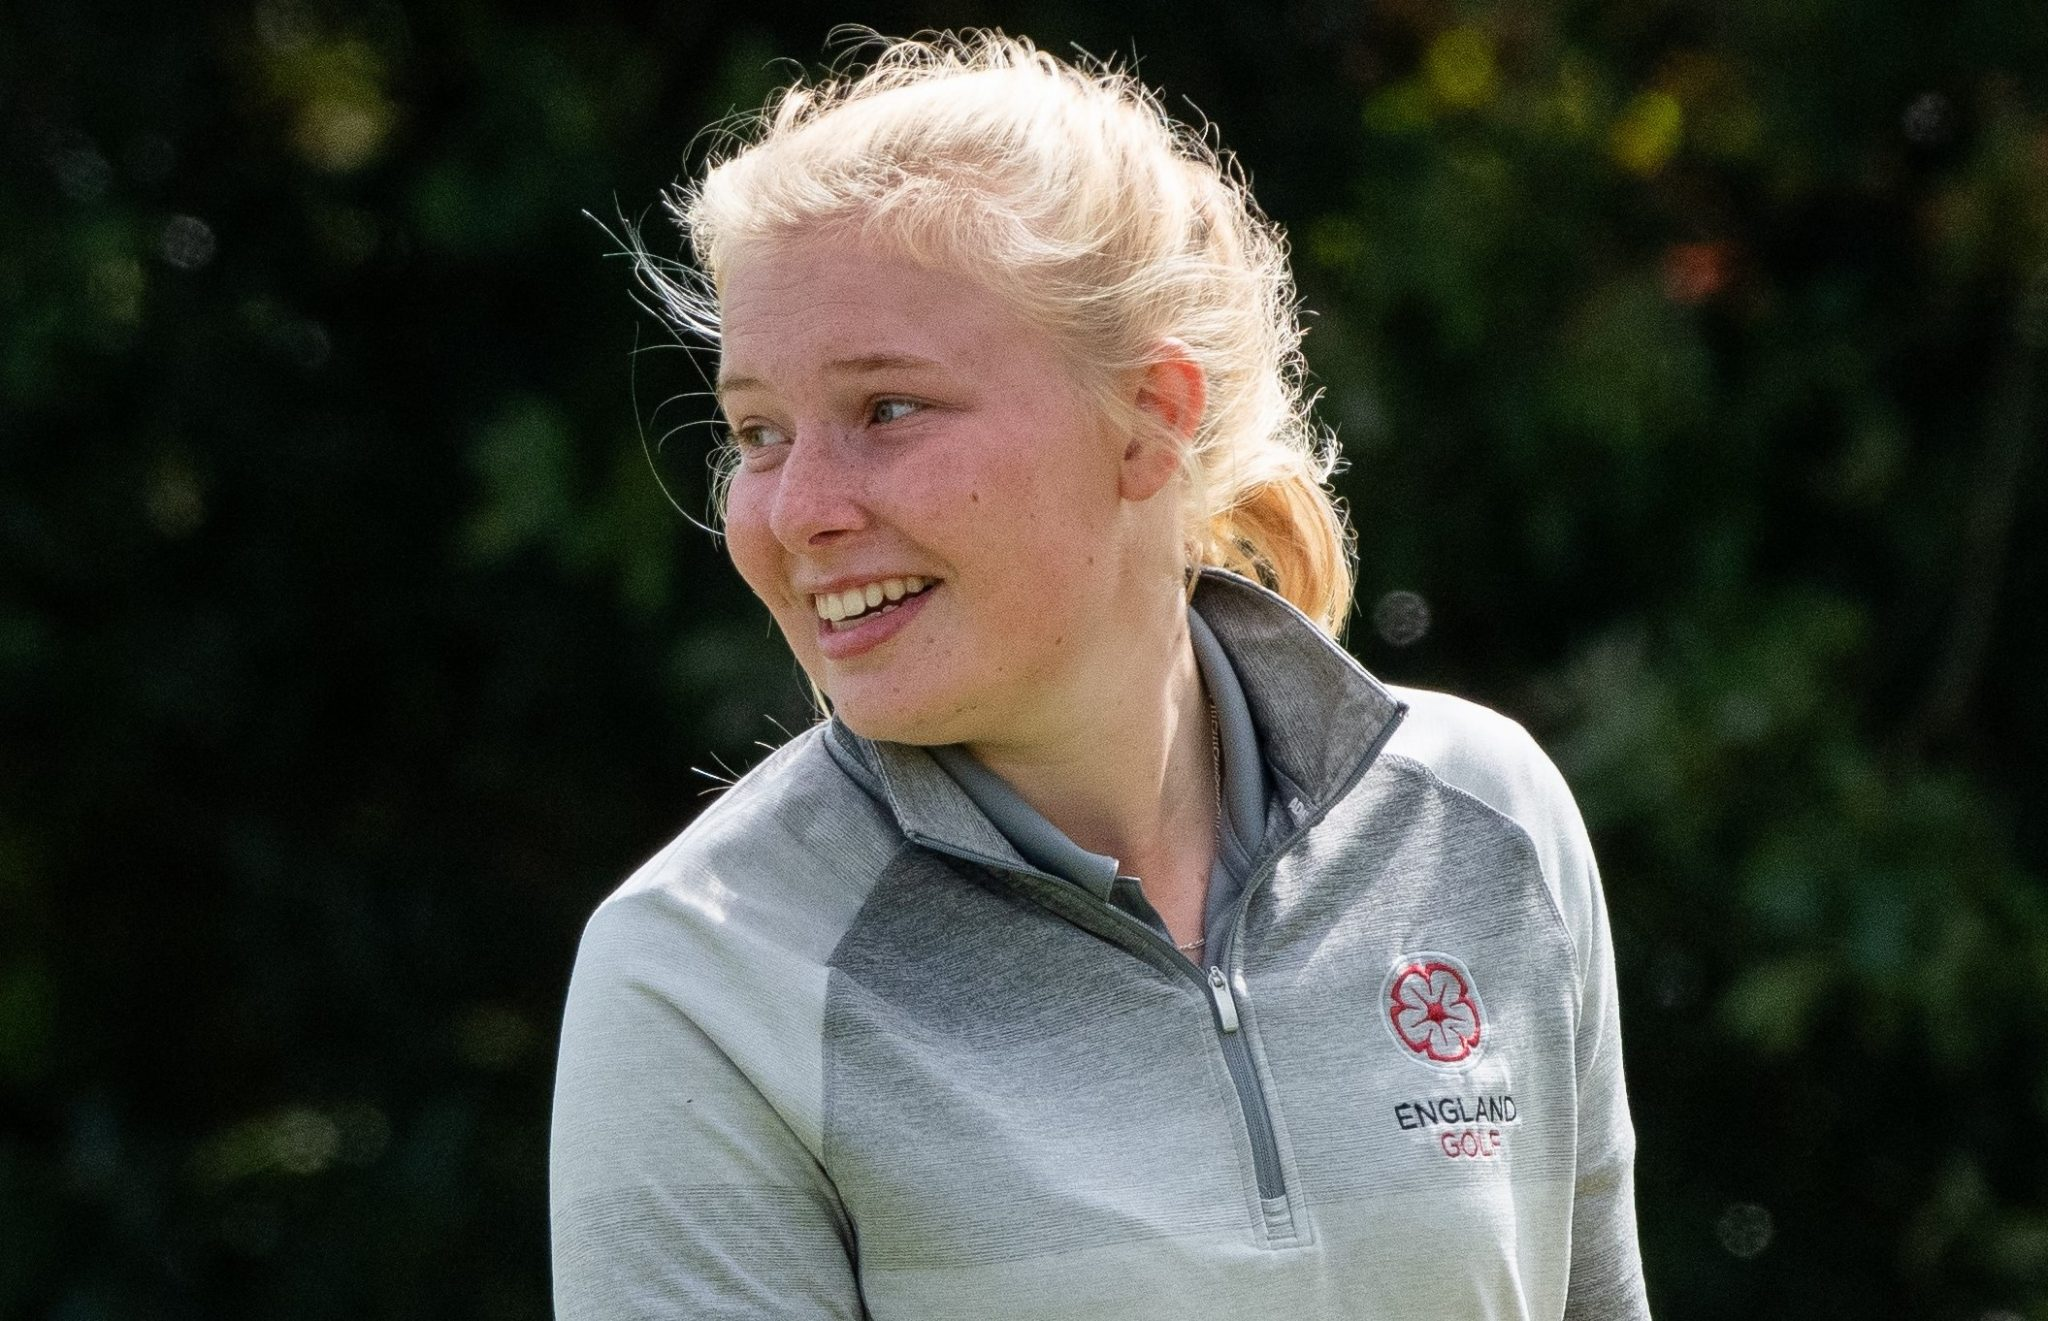 Caitlin set for England test after exam break